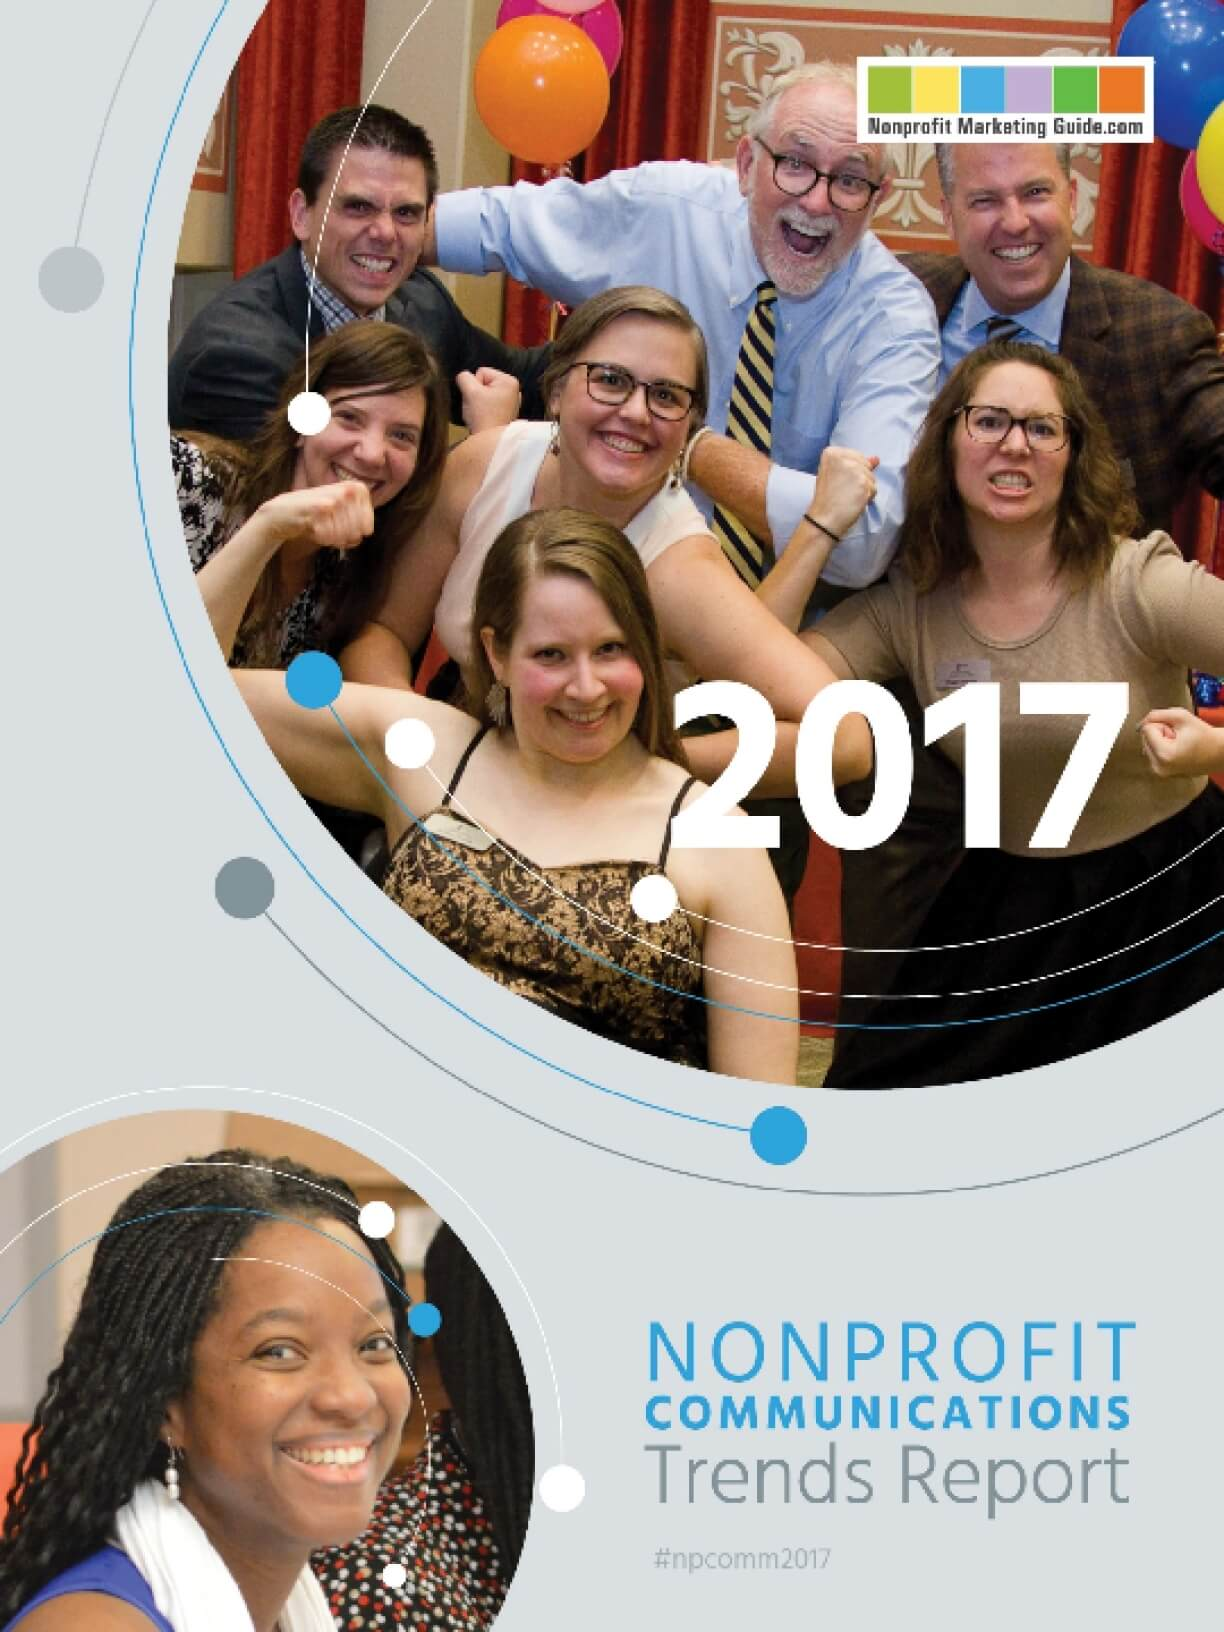 2017 Nonprofit Communications Trends Report